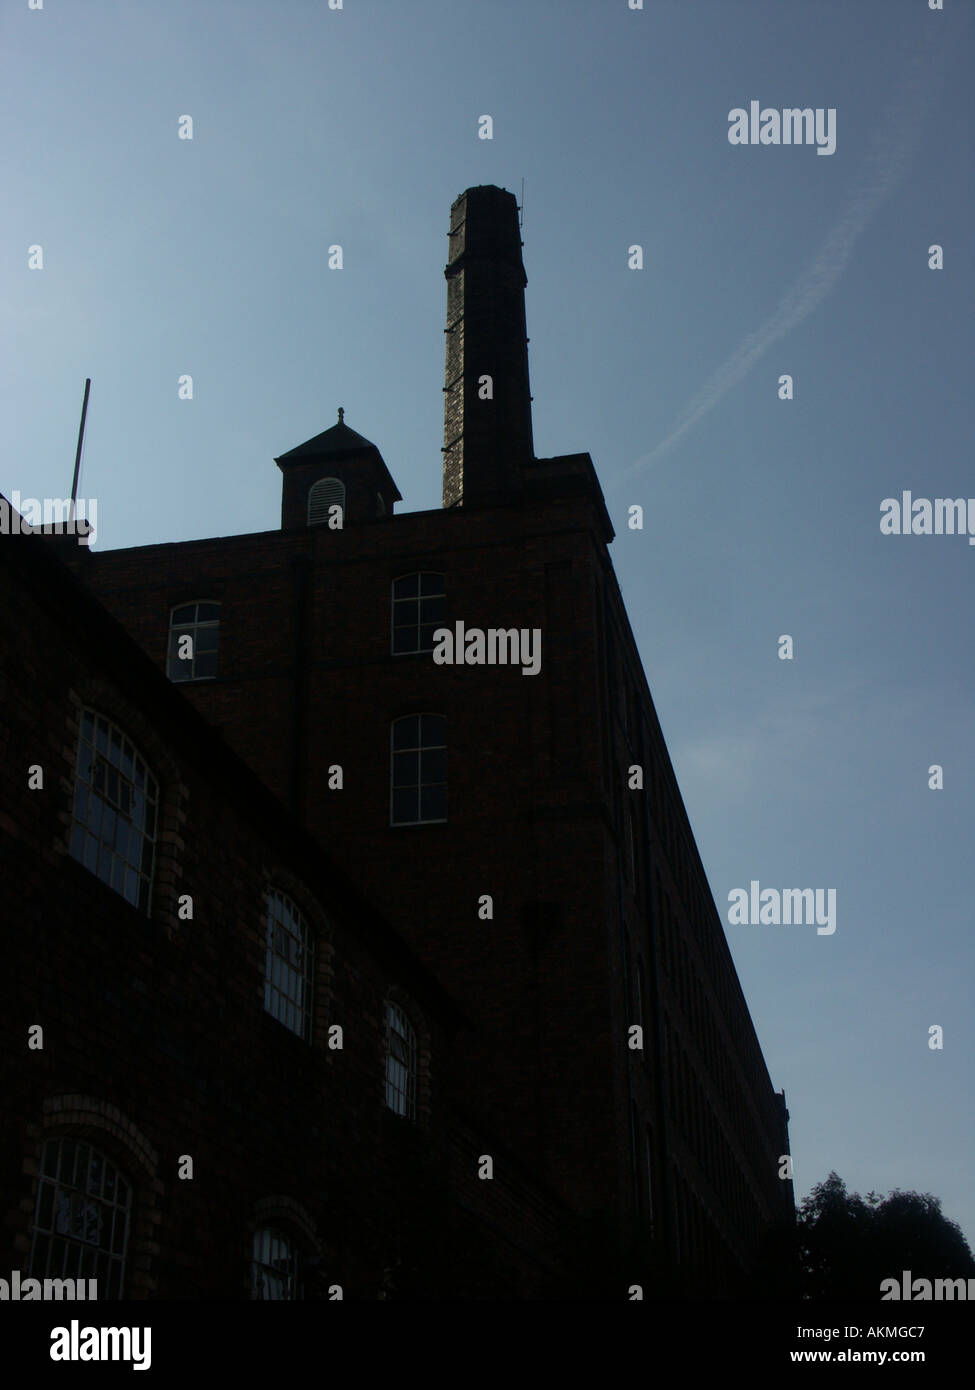 Tolsons Mill Fazeley near Tamworth showing typical tall chimney in silhouette against a blue sky. - Stock Image